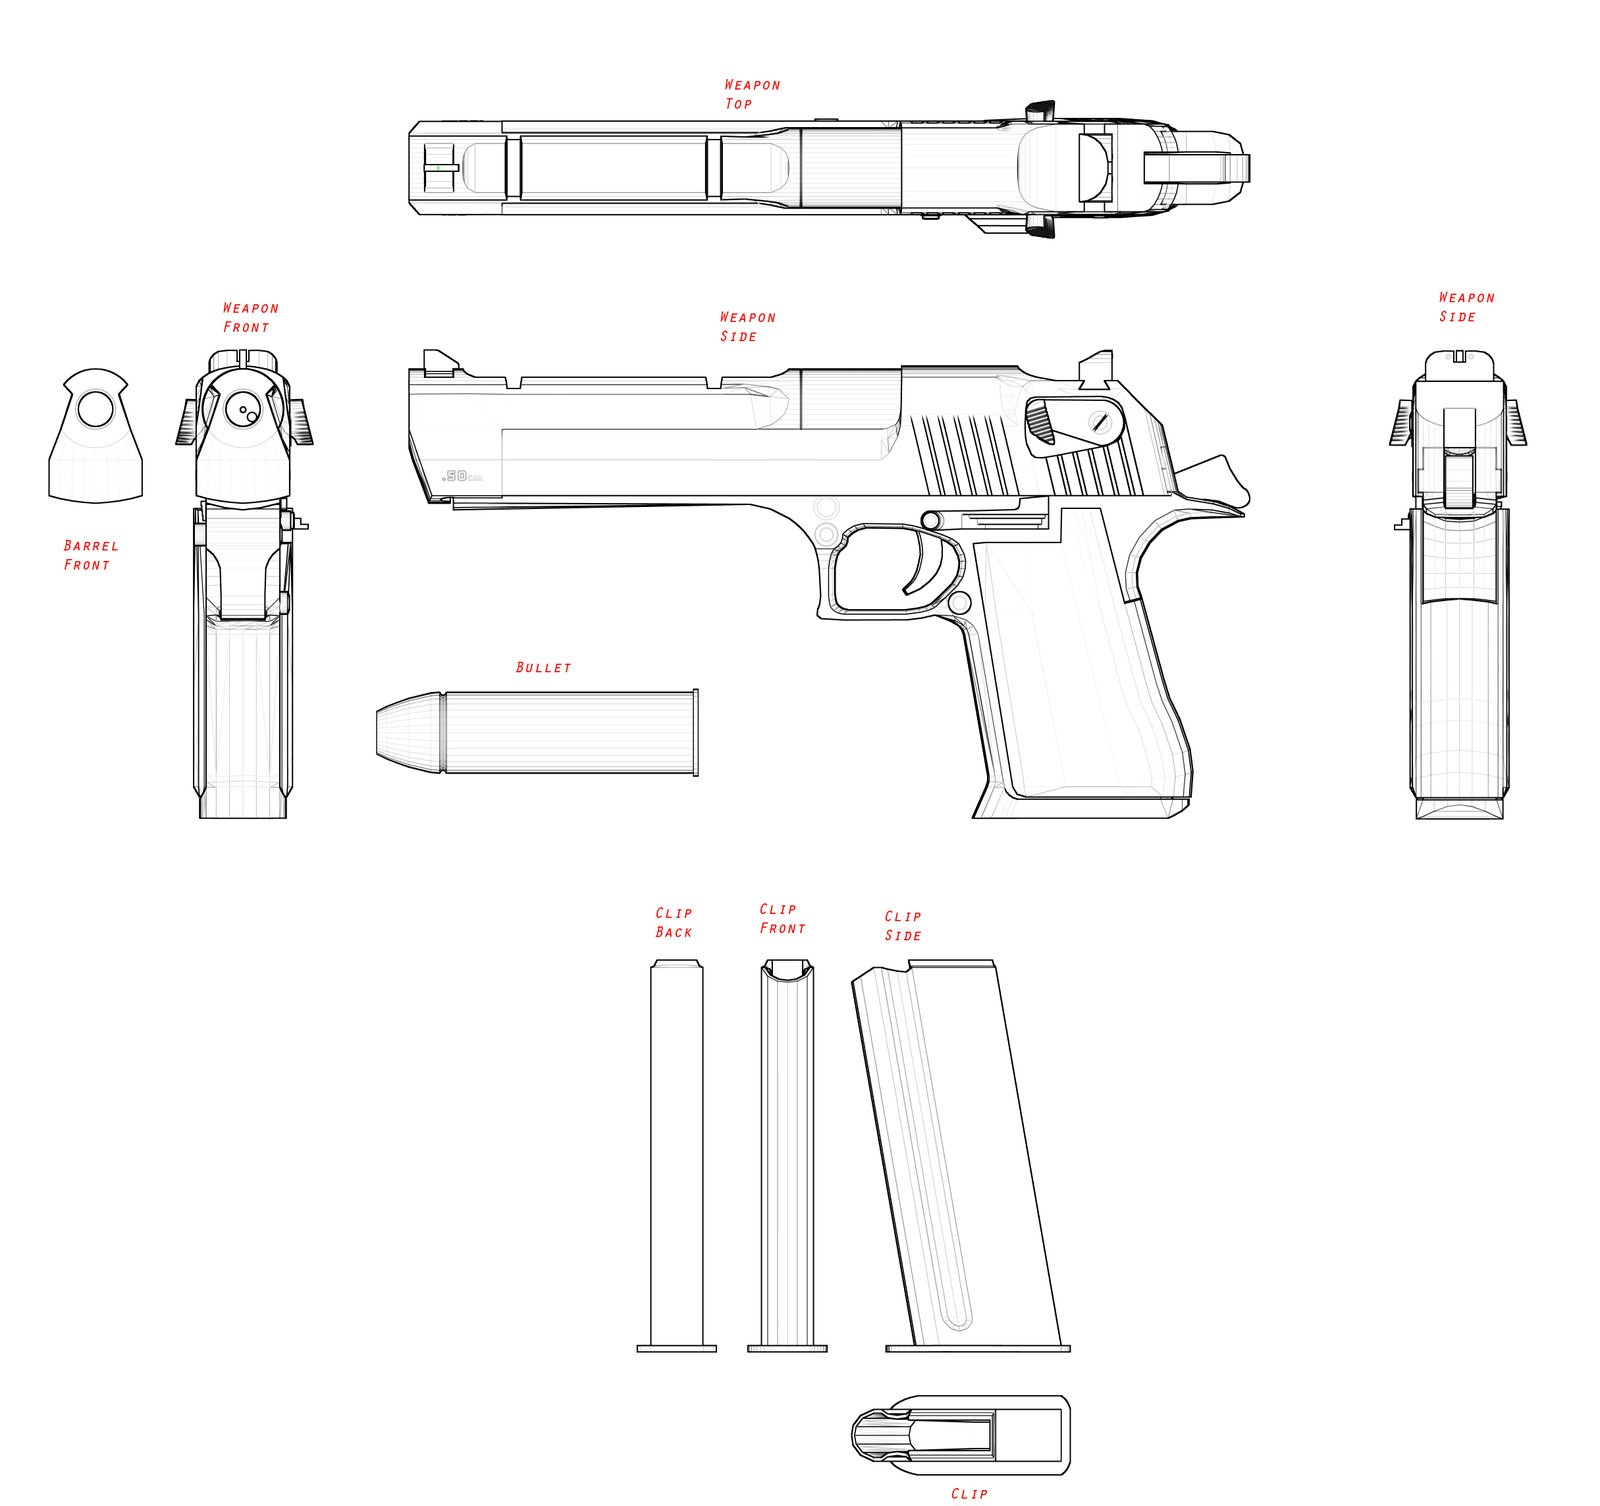 Military Pistol Blueprints Pictures To Pin